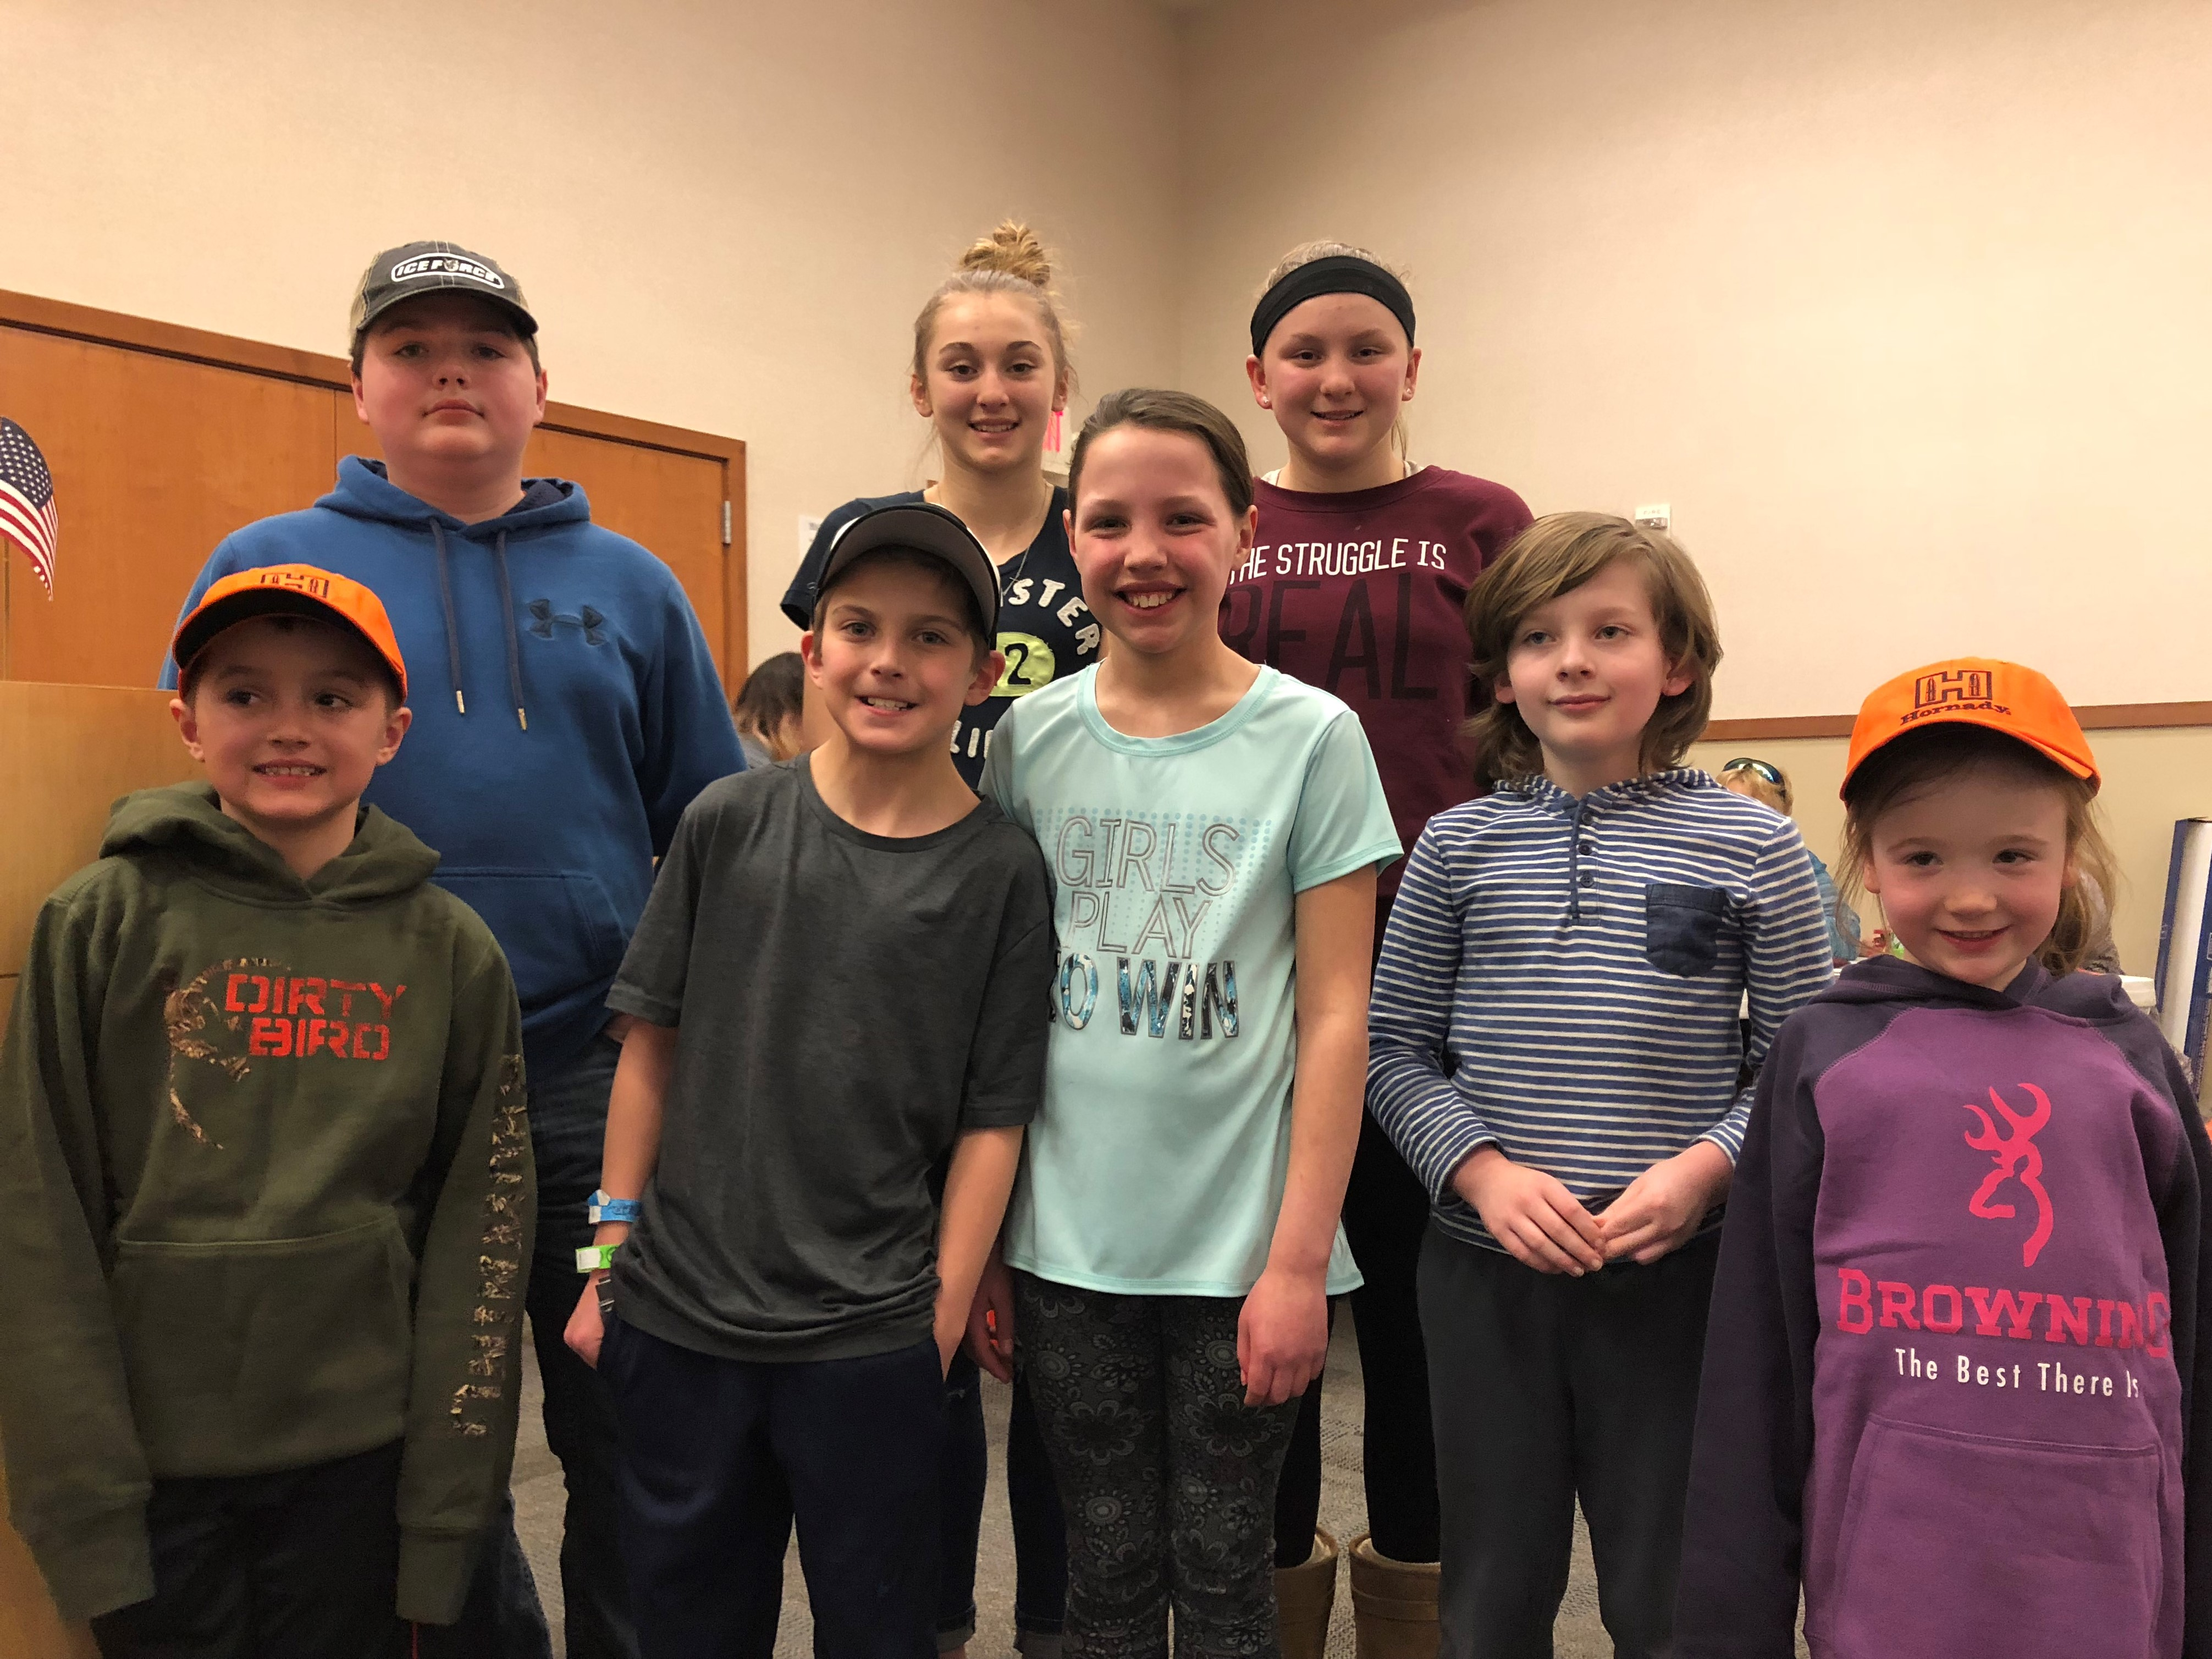 Lifetime small game hunting license winners included Broden Twardowski, Kaiden Zietlow, Lachlan Caputo, Lilly Wewers, Bella Wille, Teagan Wille, Cora Hinsch and Logan Banghart.